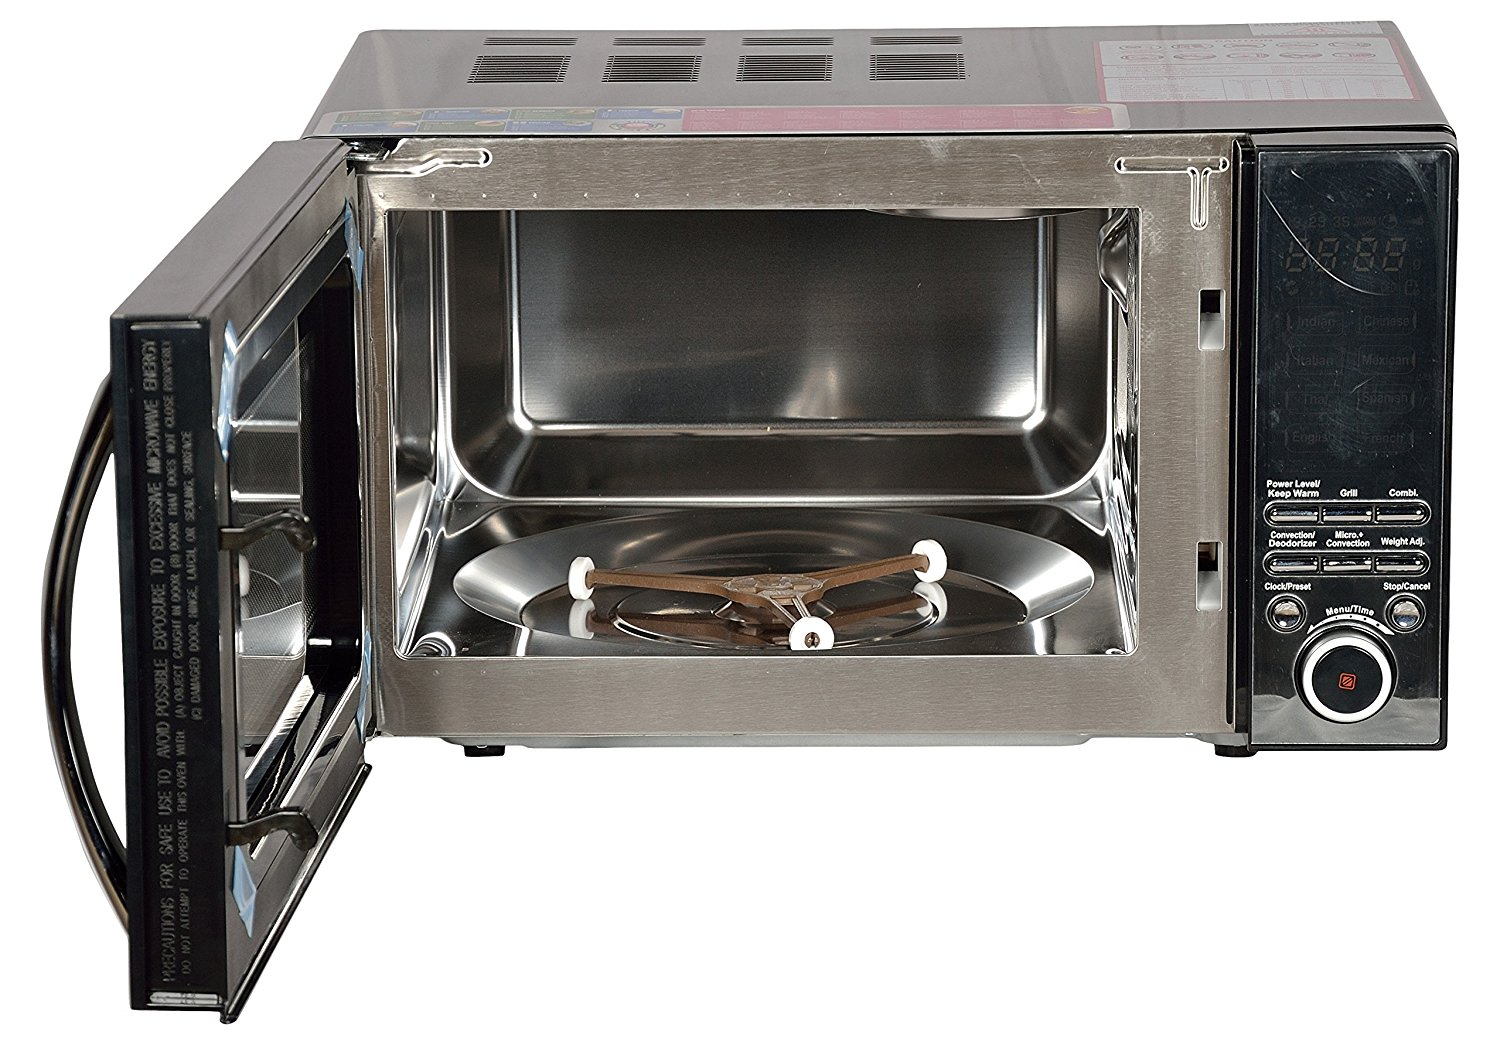 Convection Godrej Microwave Oven